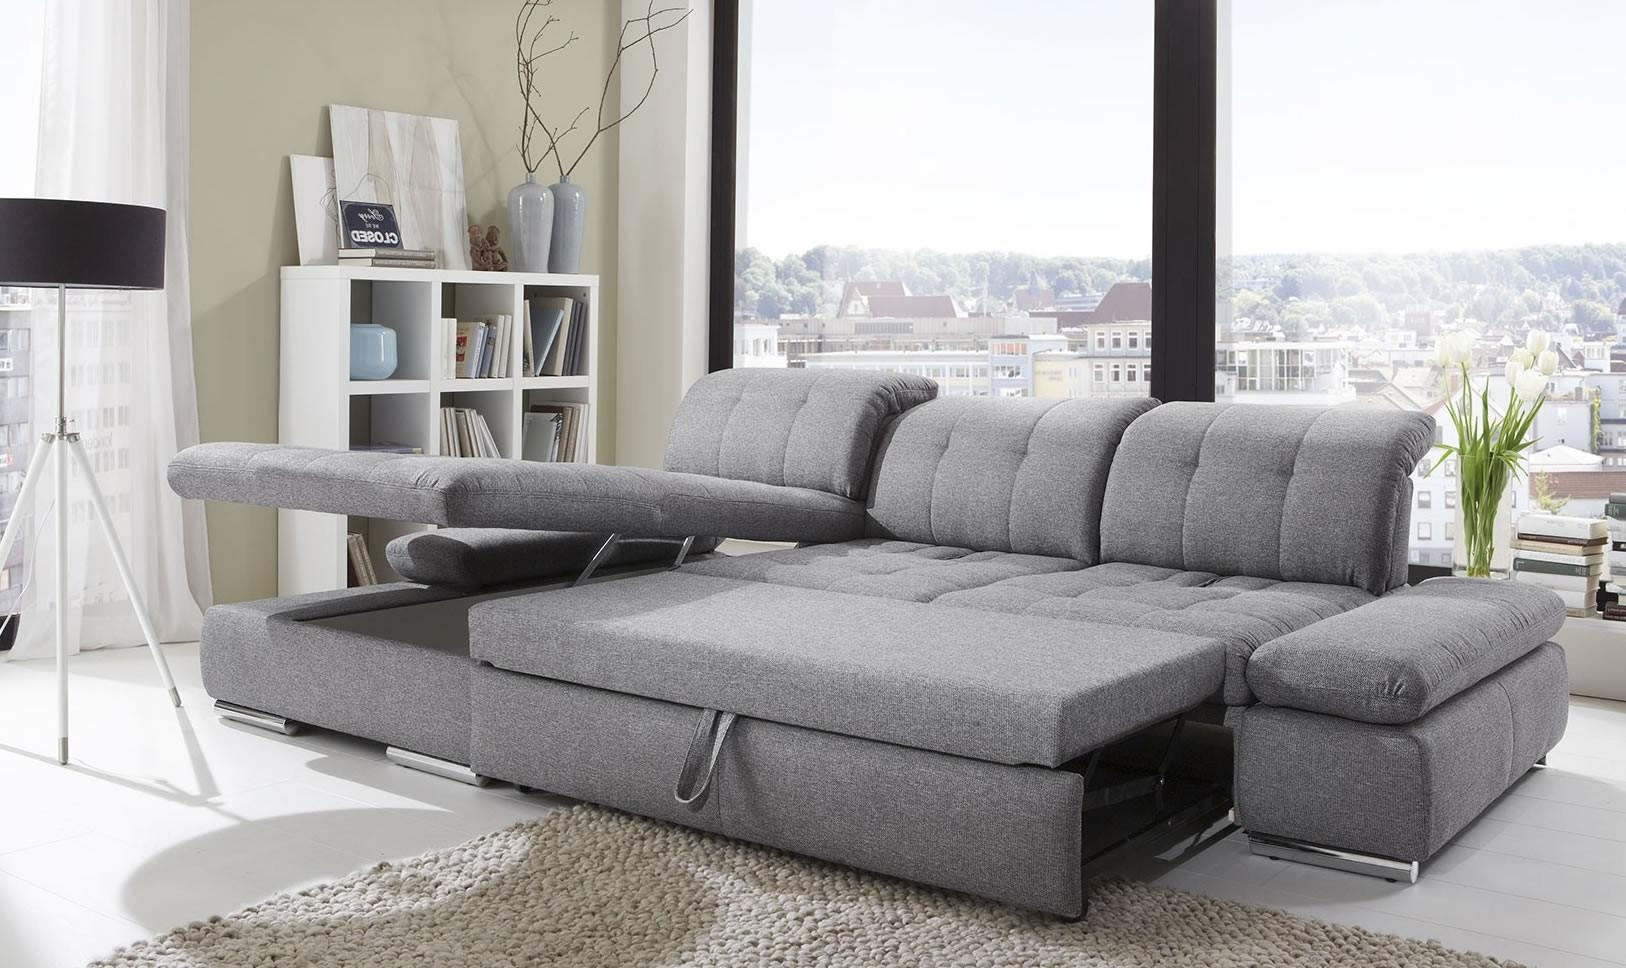 20 Top Sectional Sleeper Sofas With Chaise  Sofa Ideas